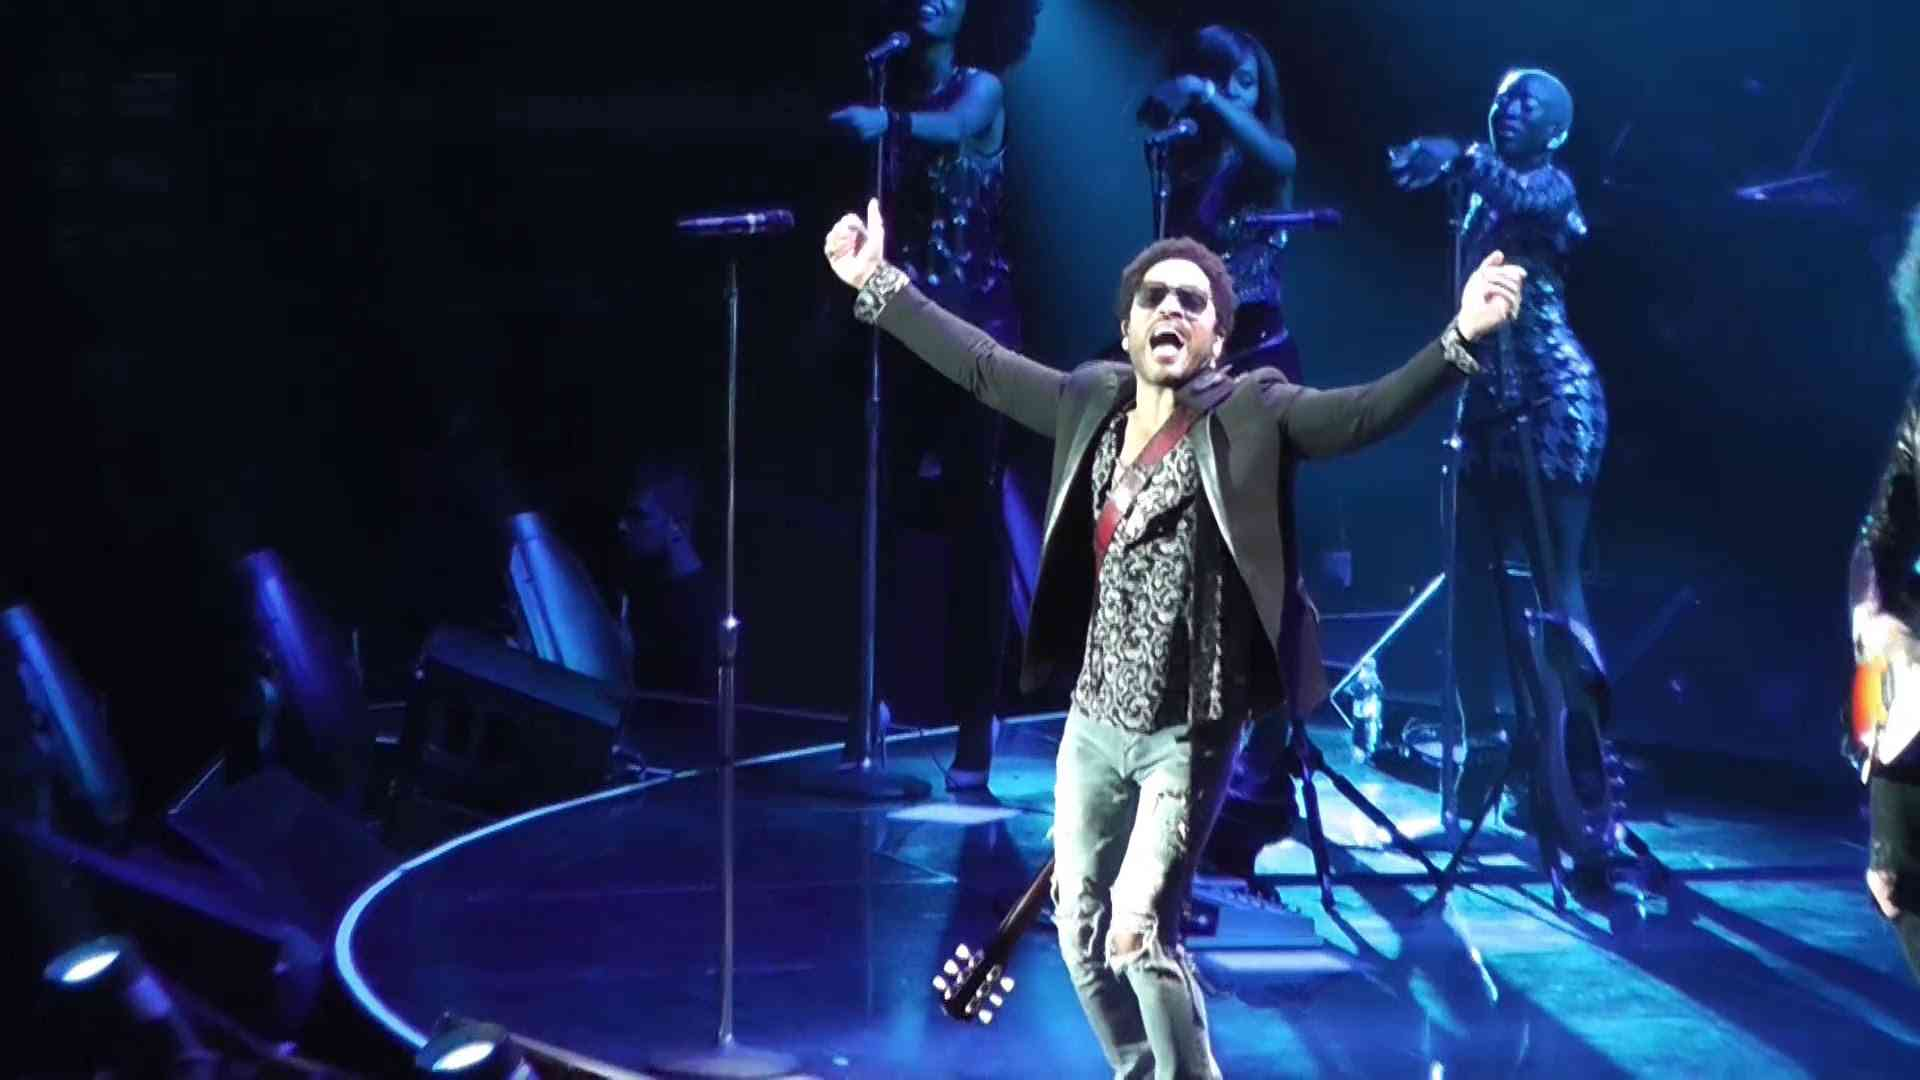 Lenny Kravitz - 03 - It Ain't Over 'Til It's Over - Live Vienna Wien 17.12.2014 - YouTube